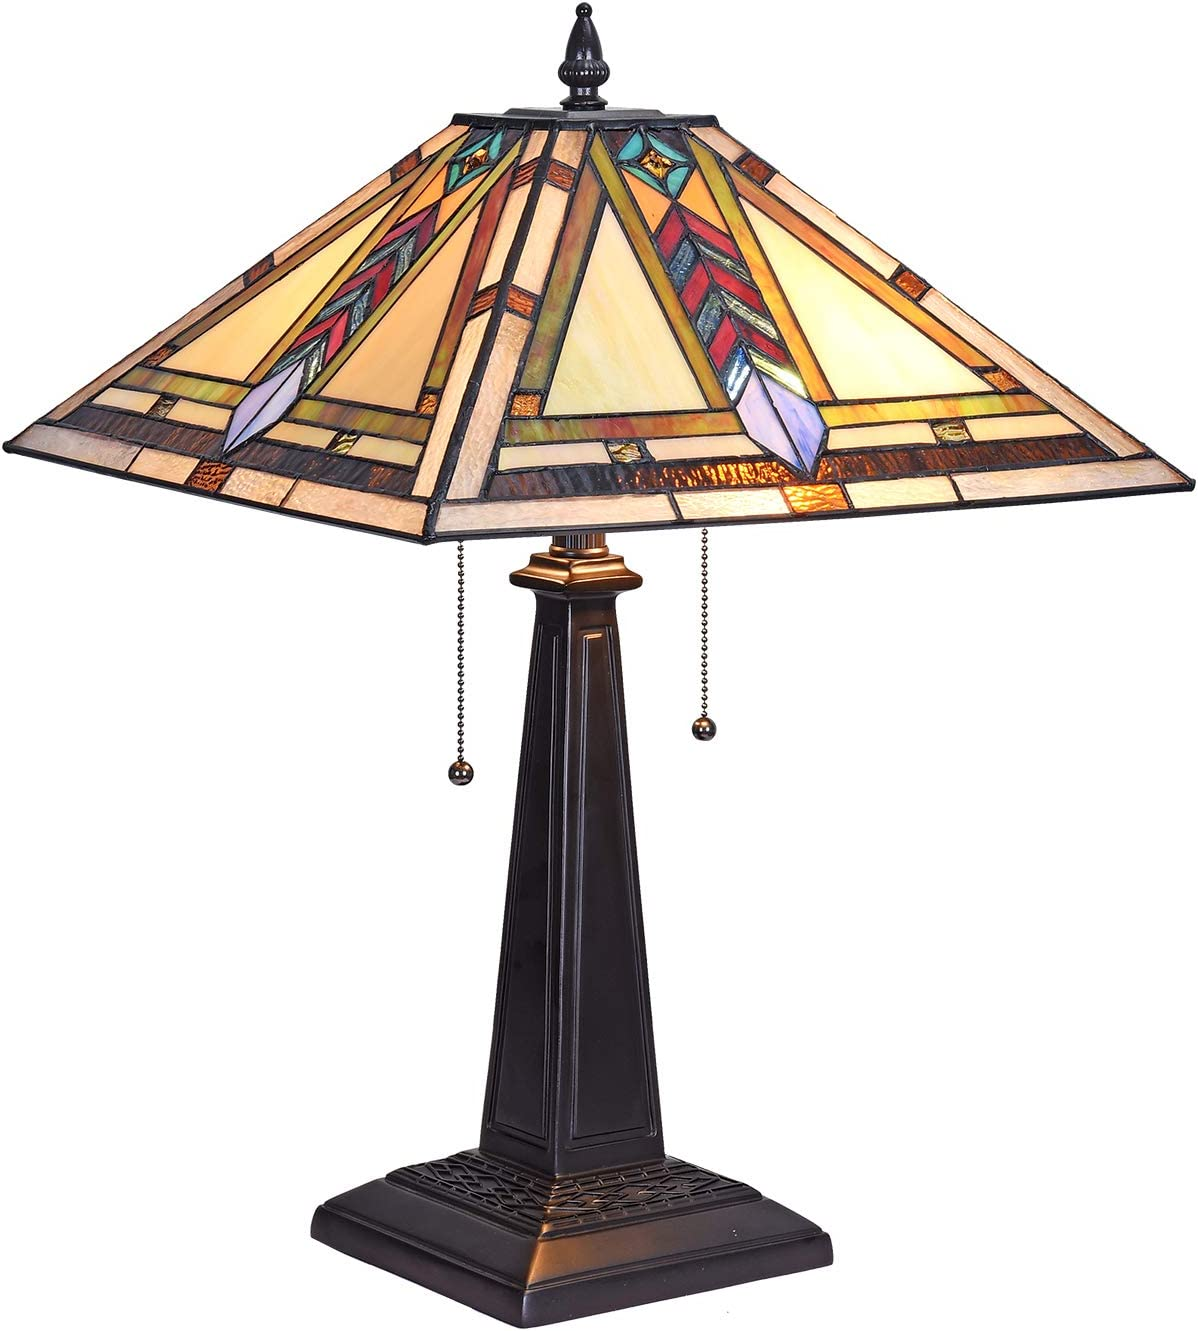 Artzone 16 inch Tiffany Style Table Lamp Banker Mission, Tiffany Style Table Lamp Mission, Tiffany Desk Lamps for Home Office, Tiffany Desk Lamps Office Bankers, Tiffany Desk Lamp Banker